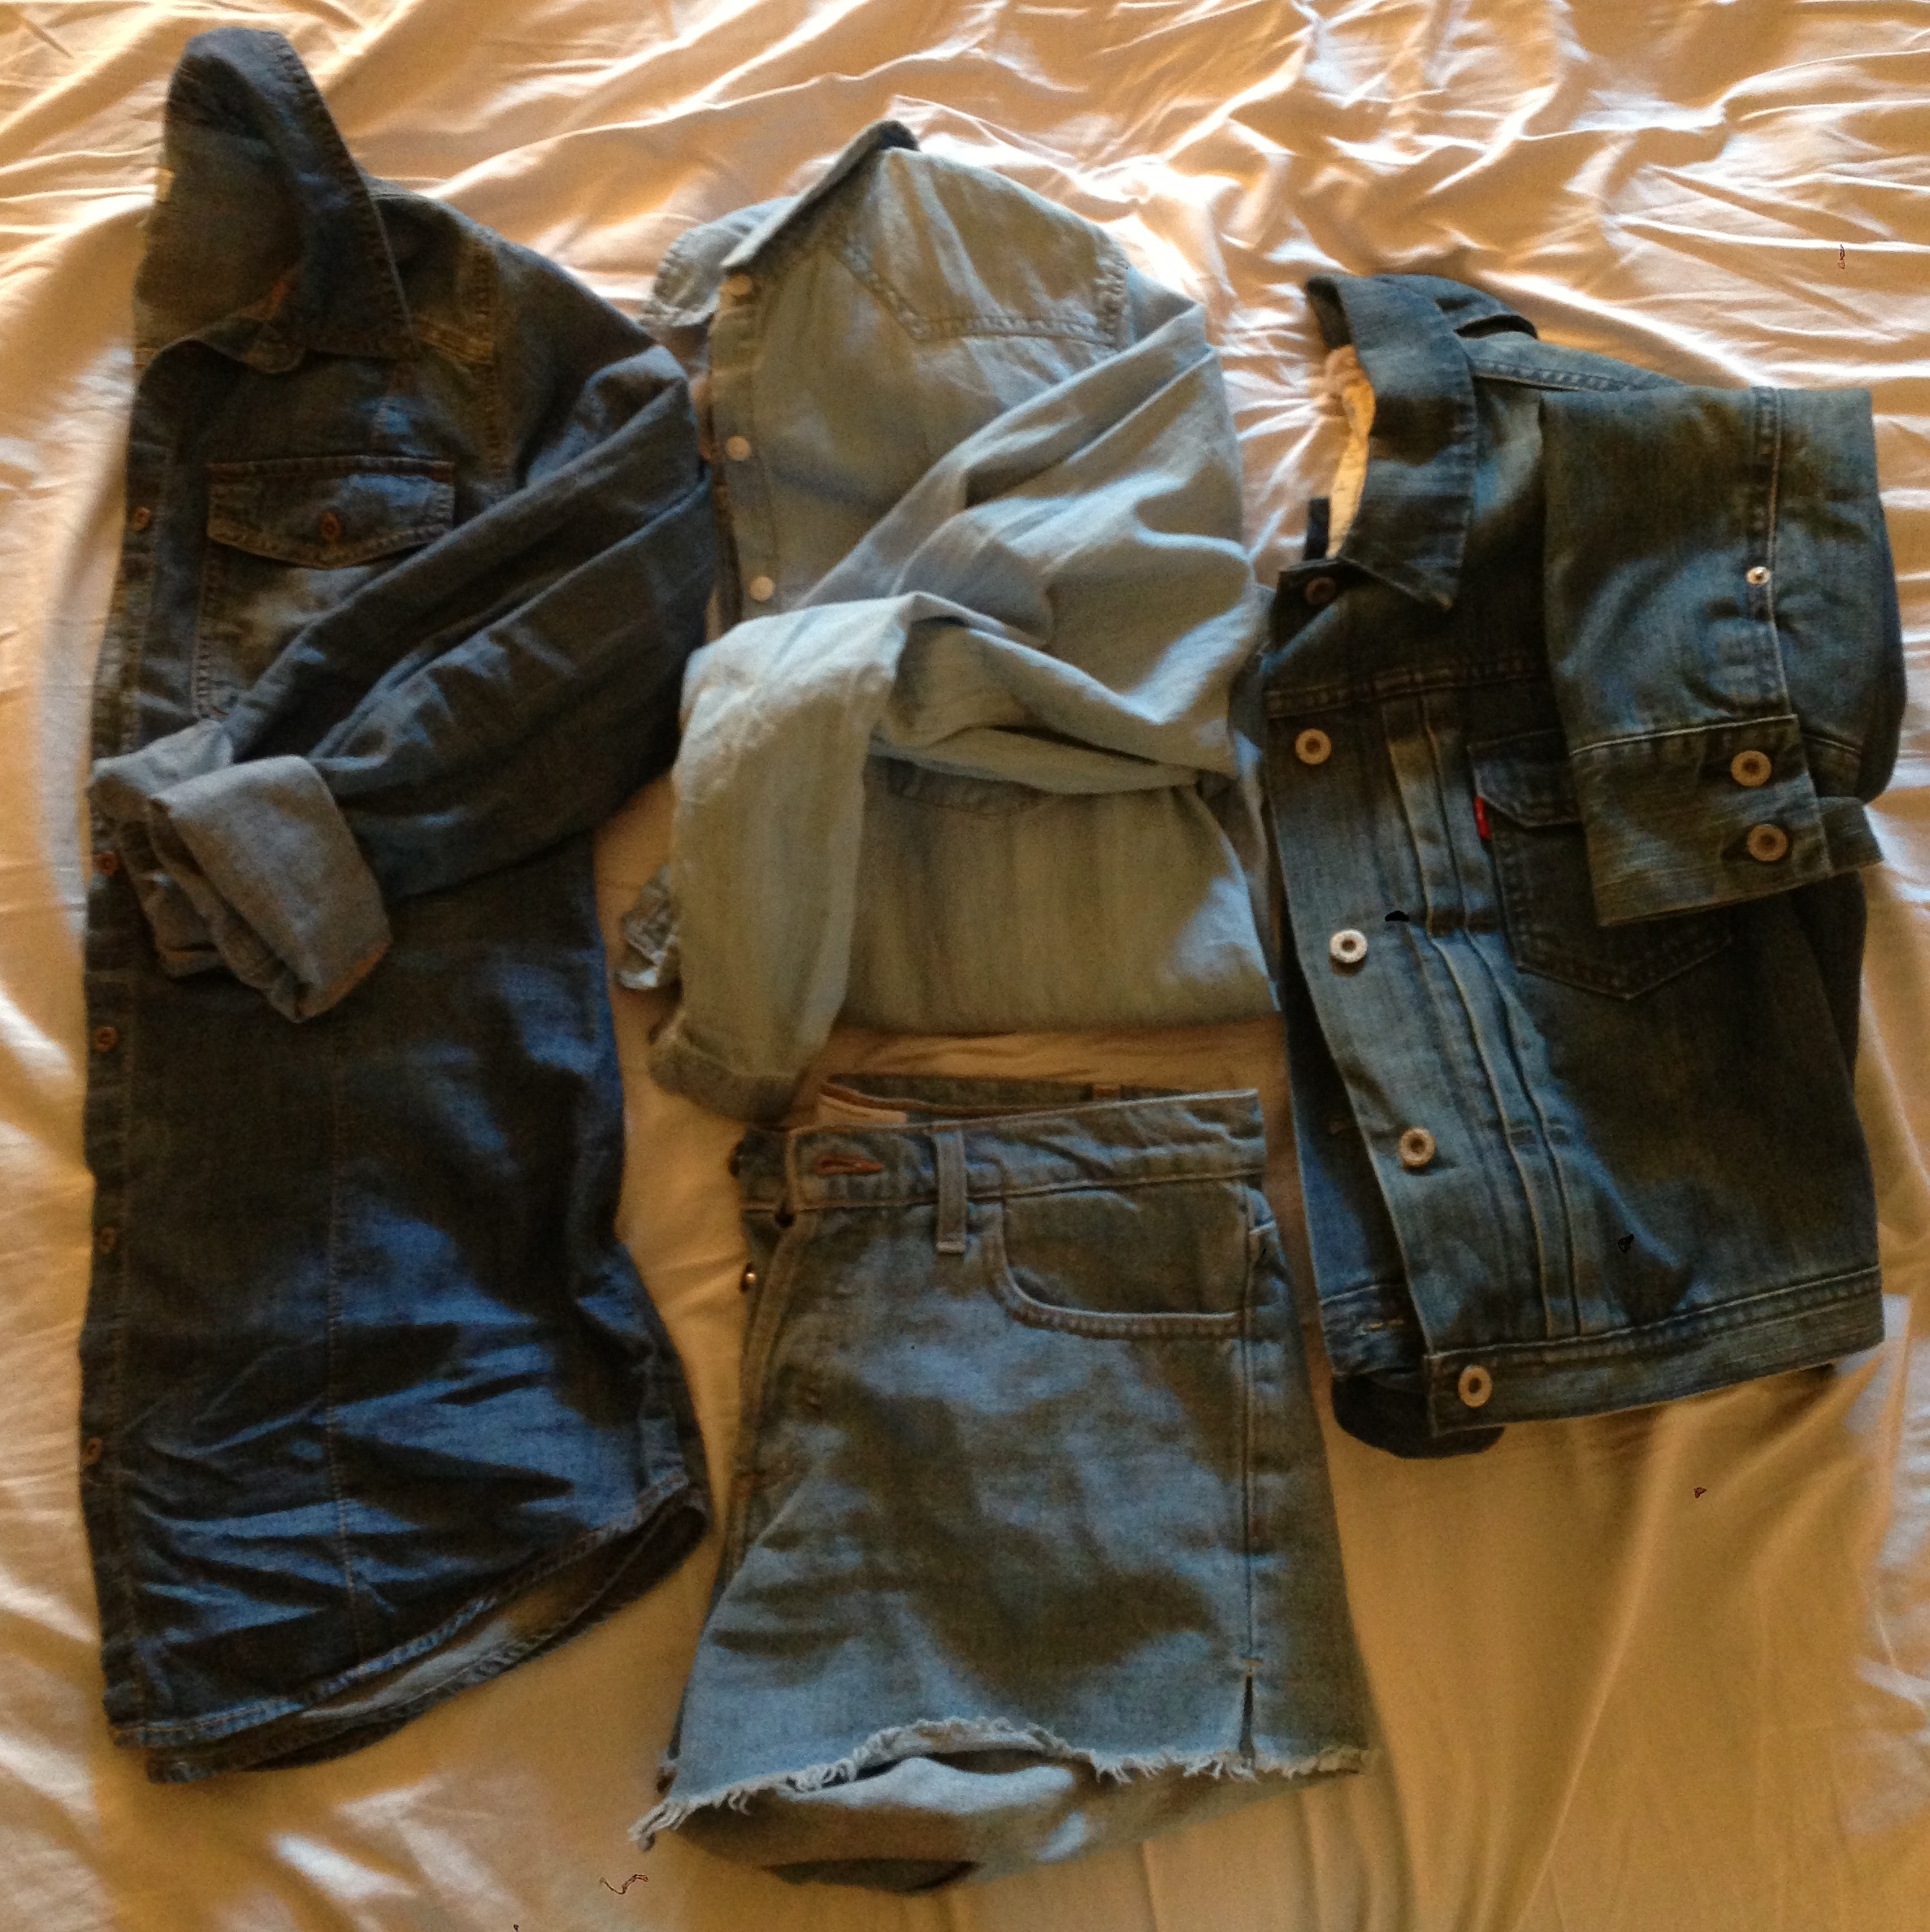 From left to rightt:  Dark denim shirt, Mossimo at Target, $24 Lightwash Boyfriend-fit Oversized denim shirt, Cotton On, $19.95 Denim cutoff shorts, American Apparel, $58 Denim Trucker Jacket, Levi's, $78